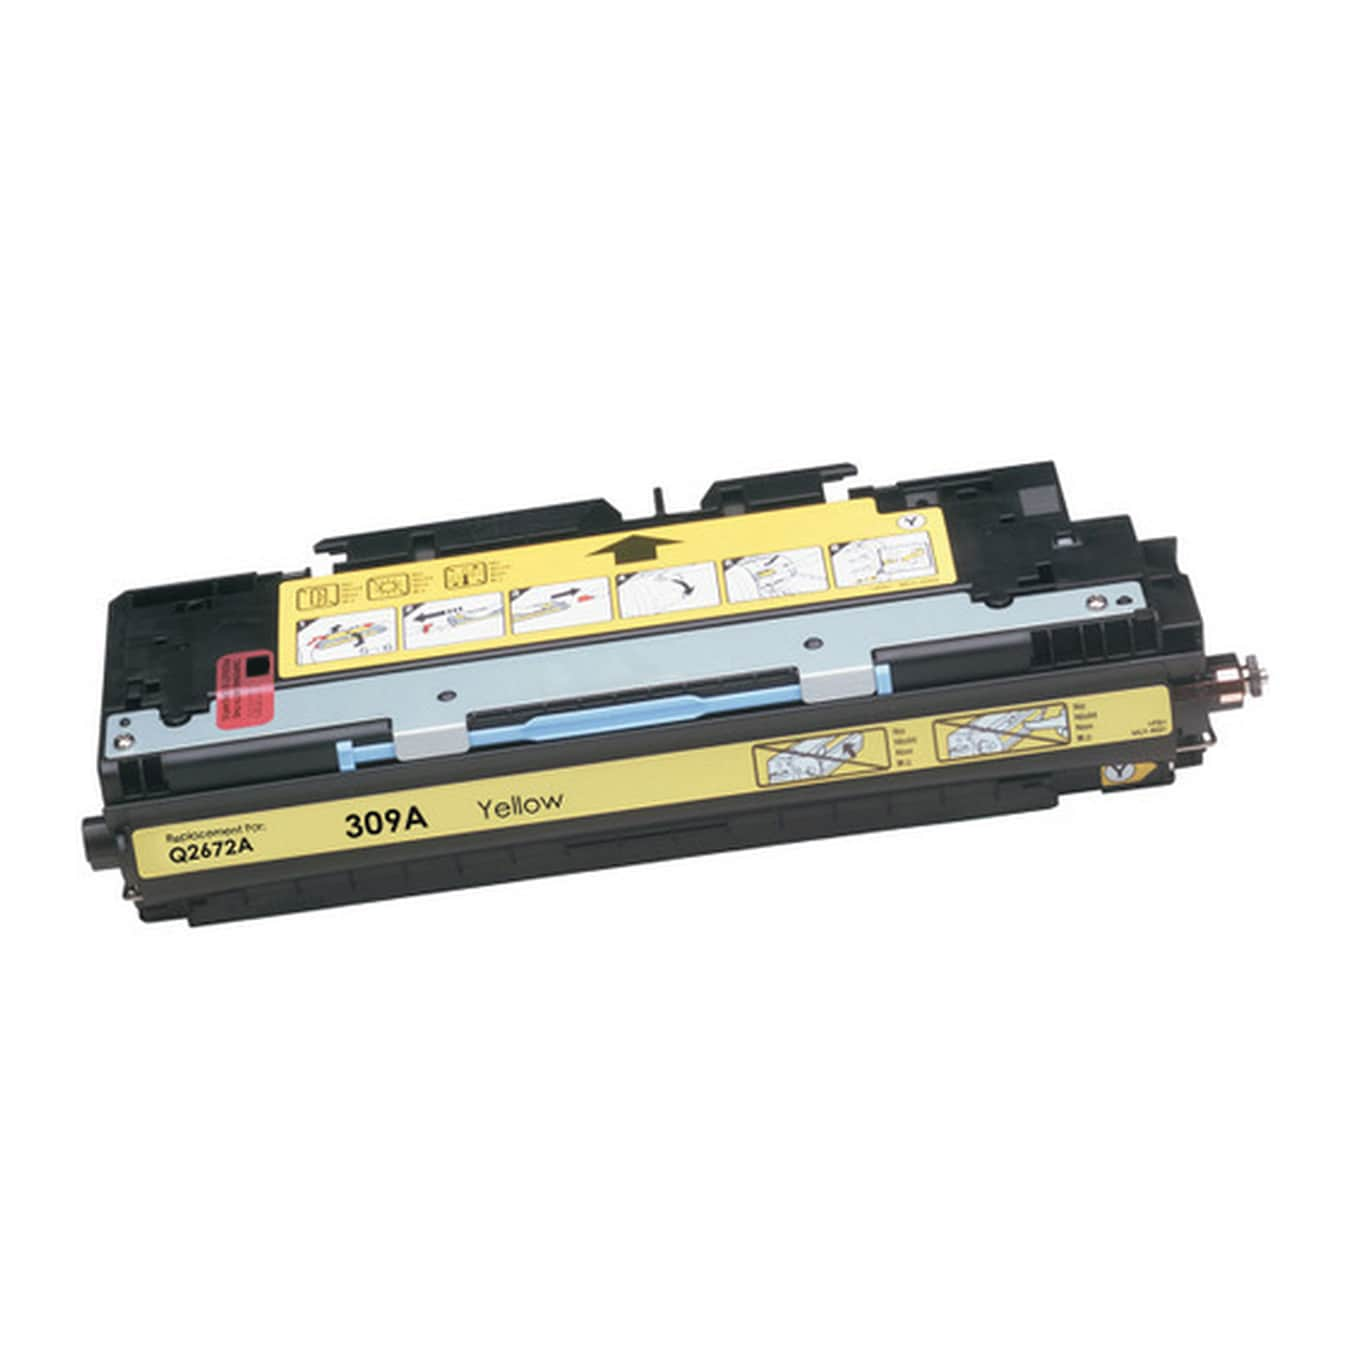 Q2672A Toner Cartridge - HP Remanufactured (Yellow)